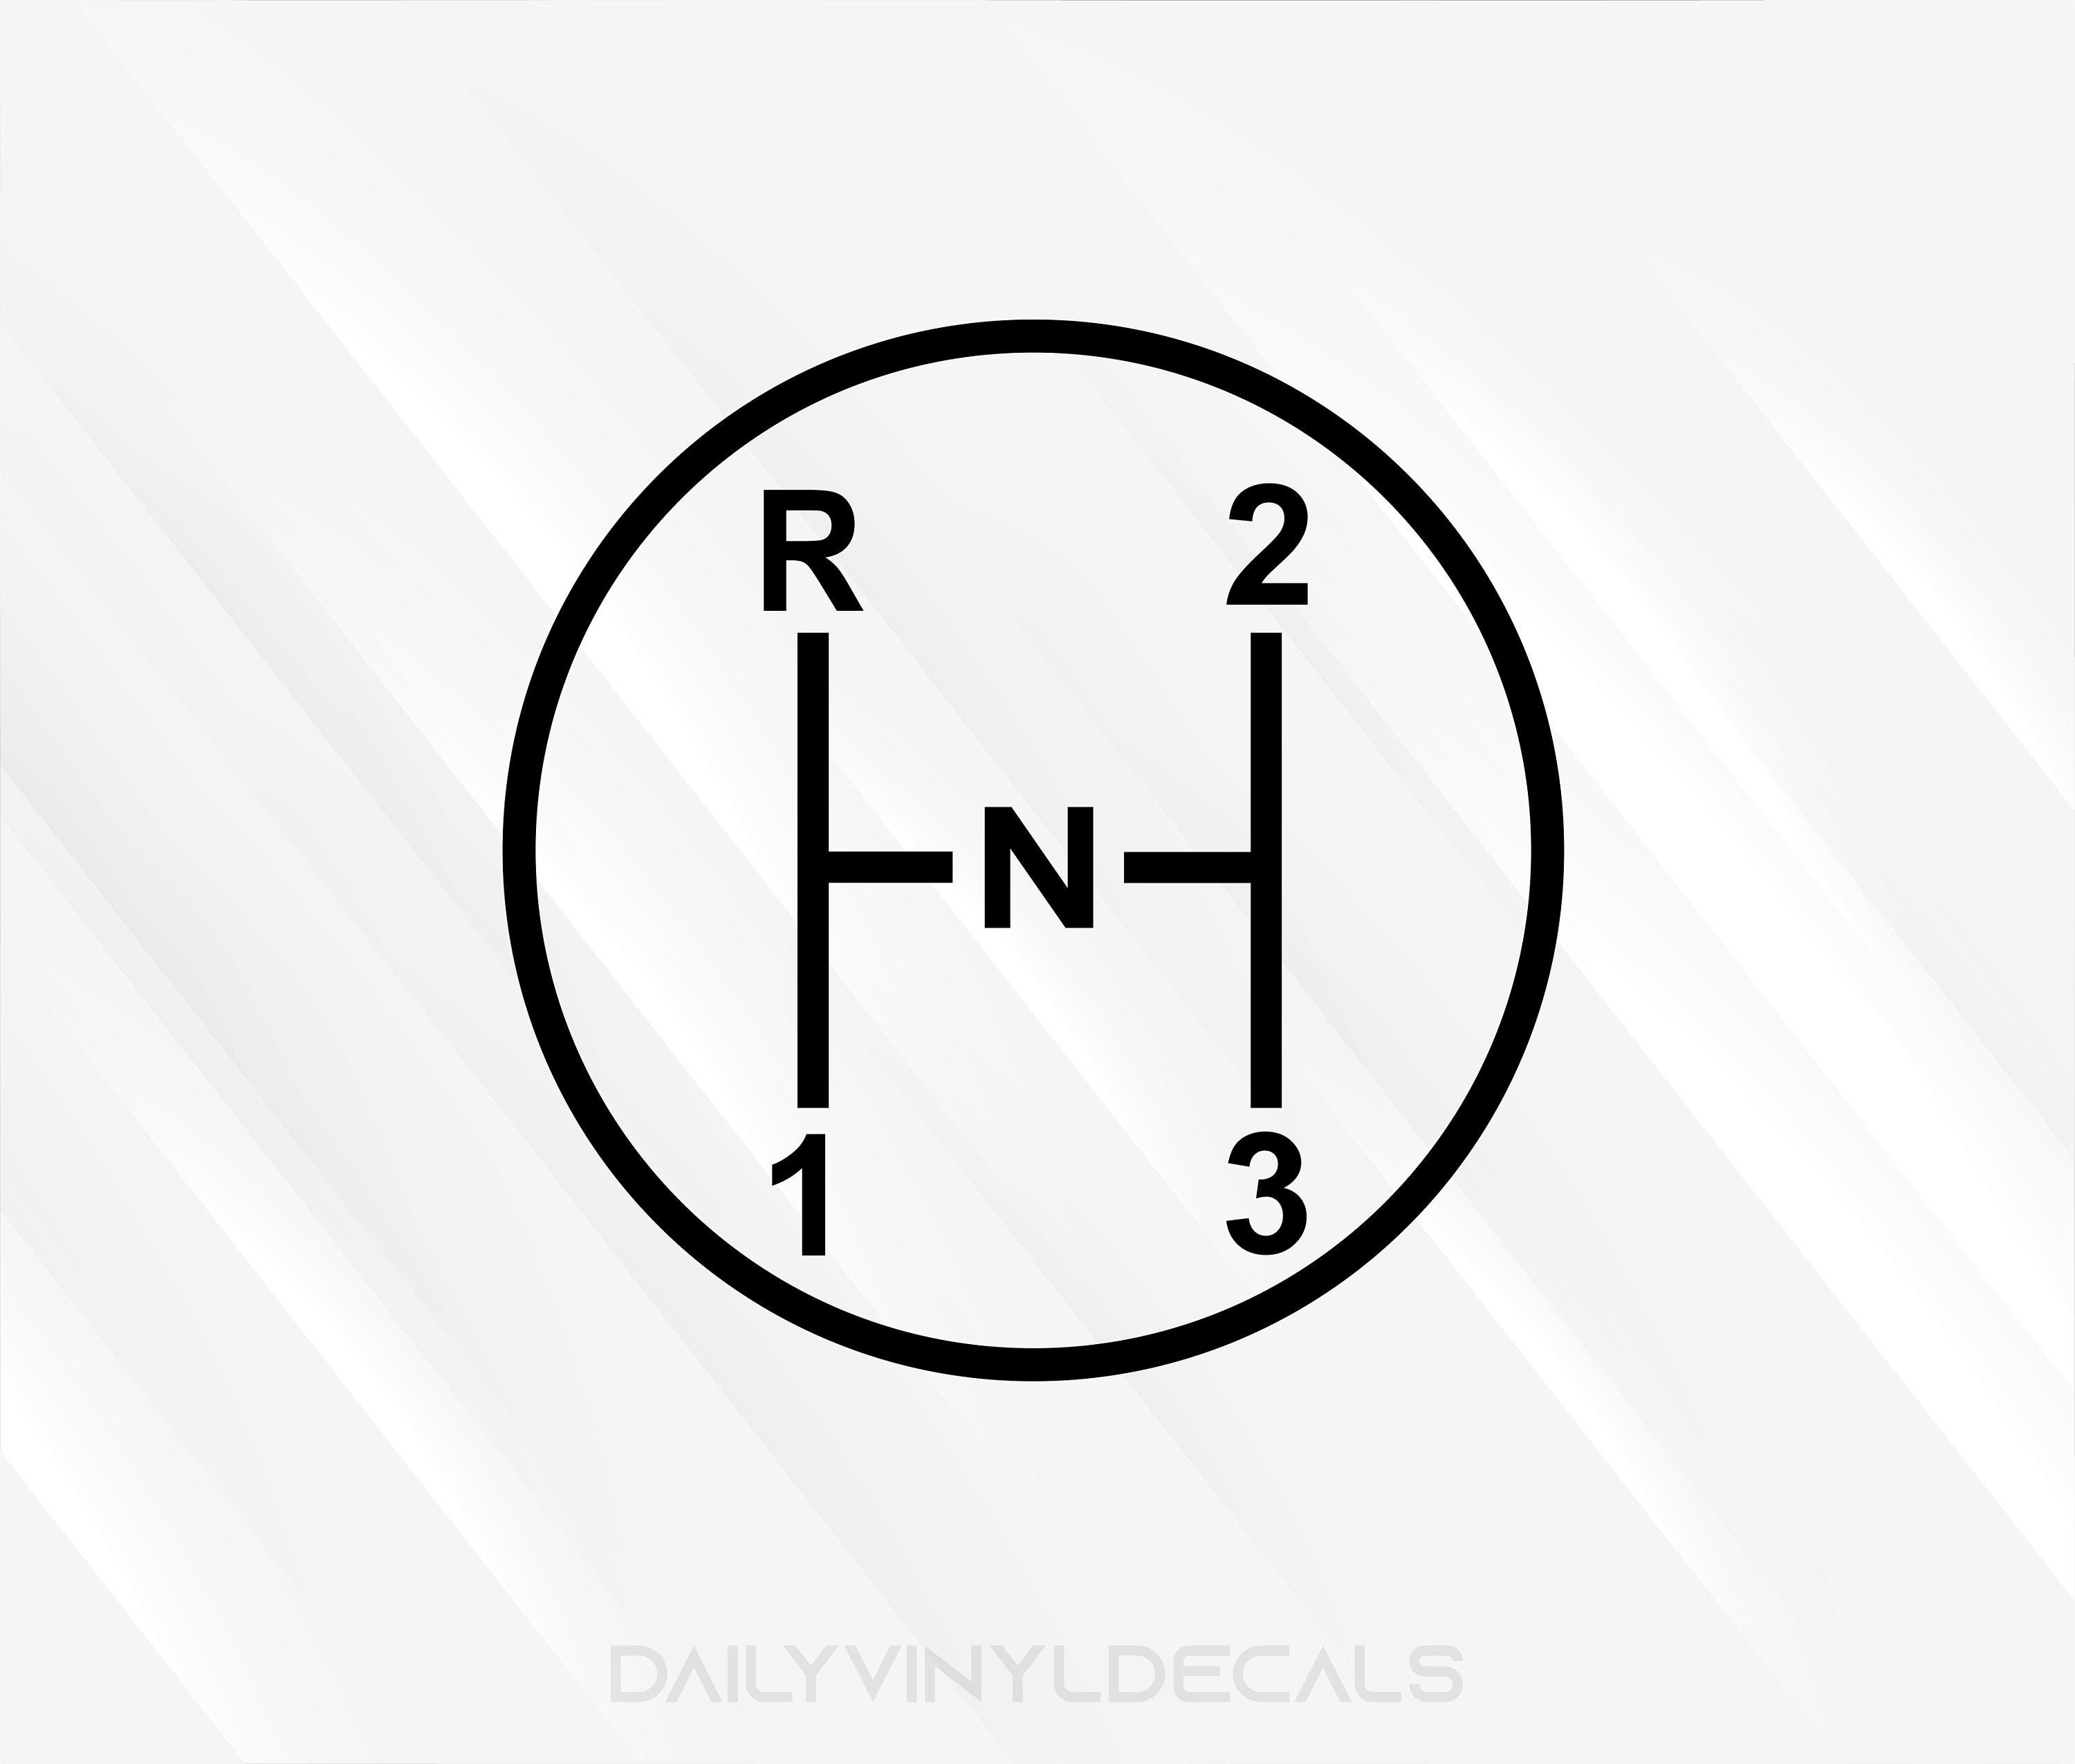 3 on the Tree Decal Gear Diagram Decal | 3 on the tree Diagram Car Truck  Stick Shift 3 Speed Transmission | Manual Car Shift Diagram StickerDailyVinylDecals